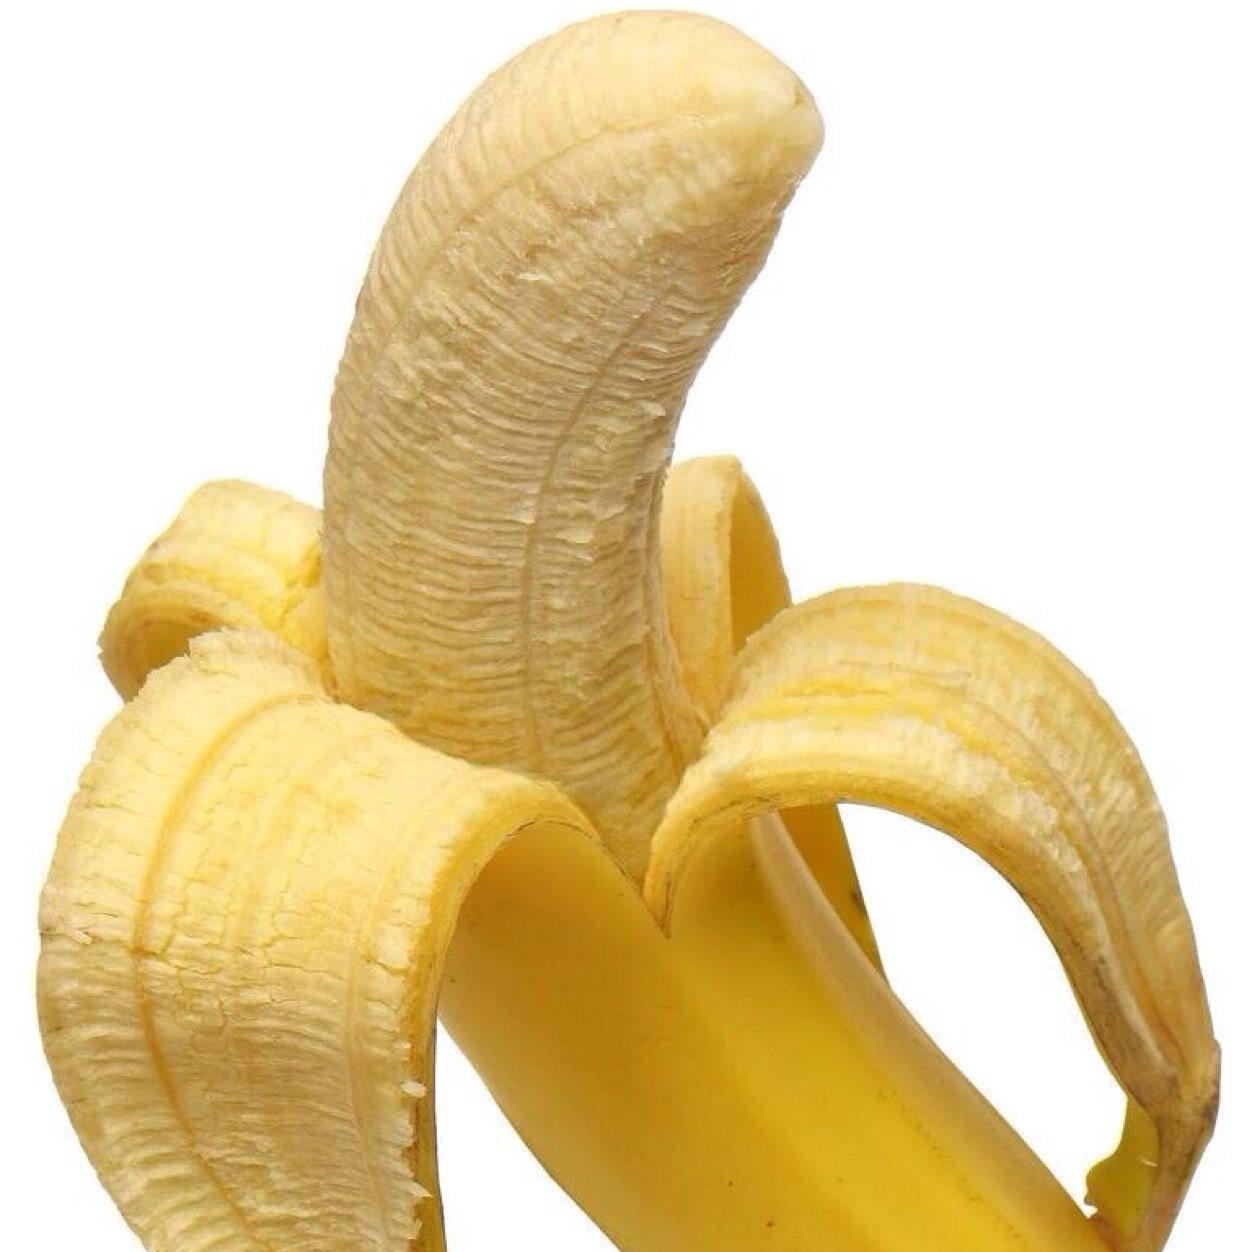 banana in my ass